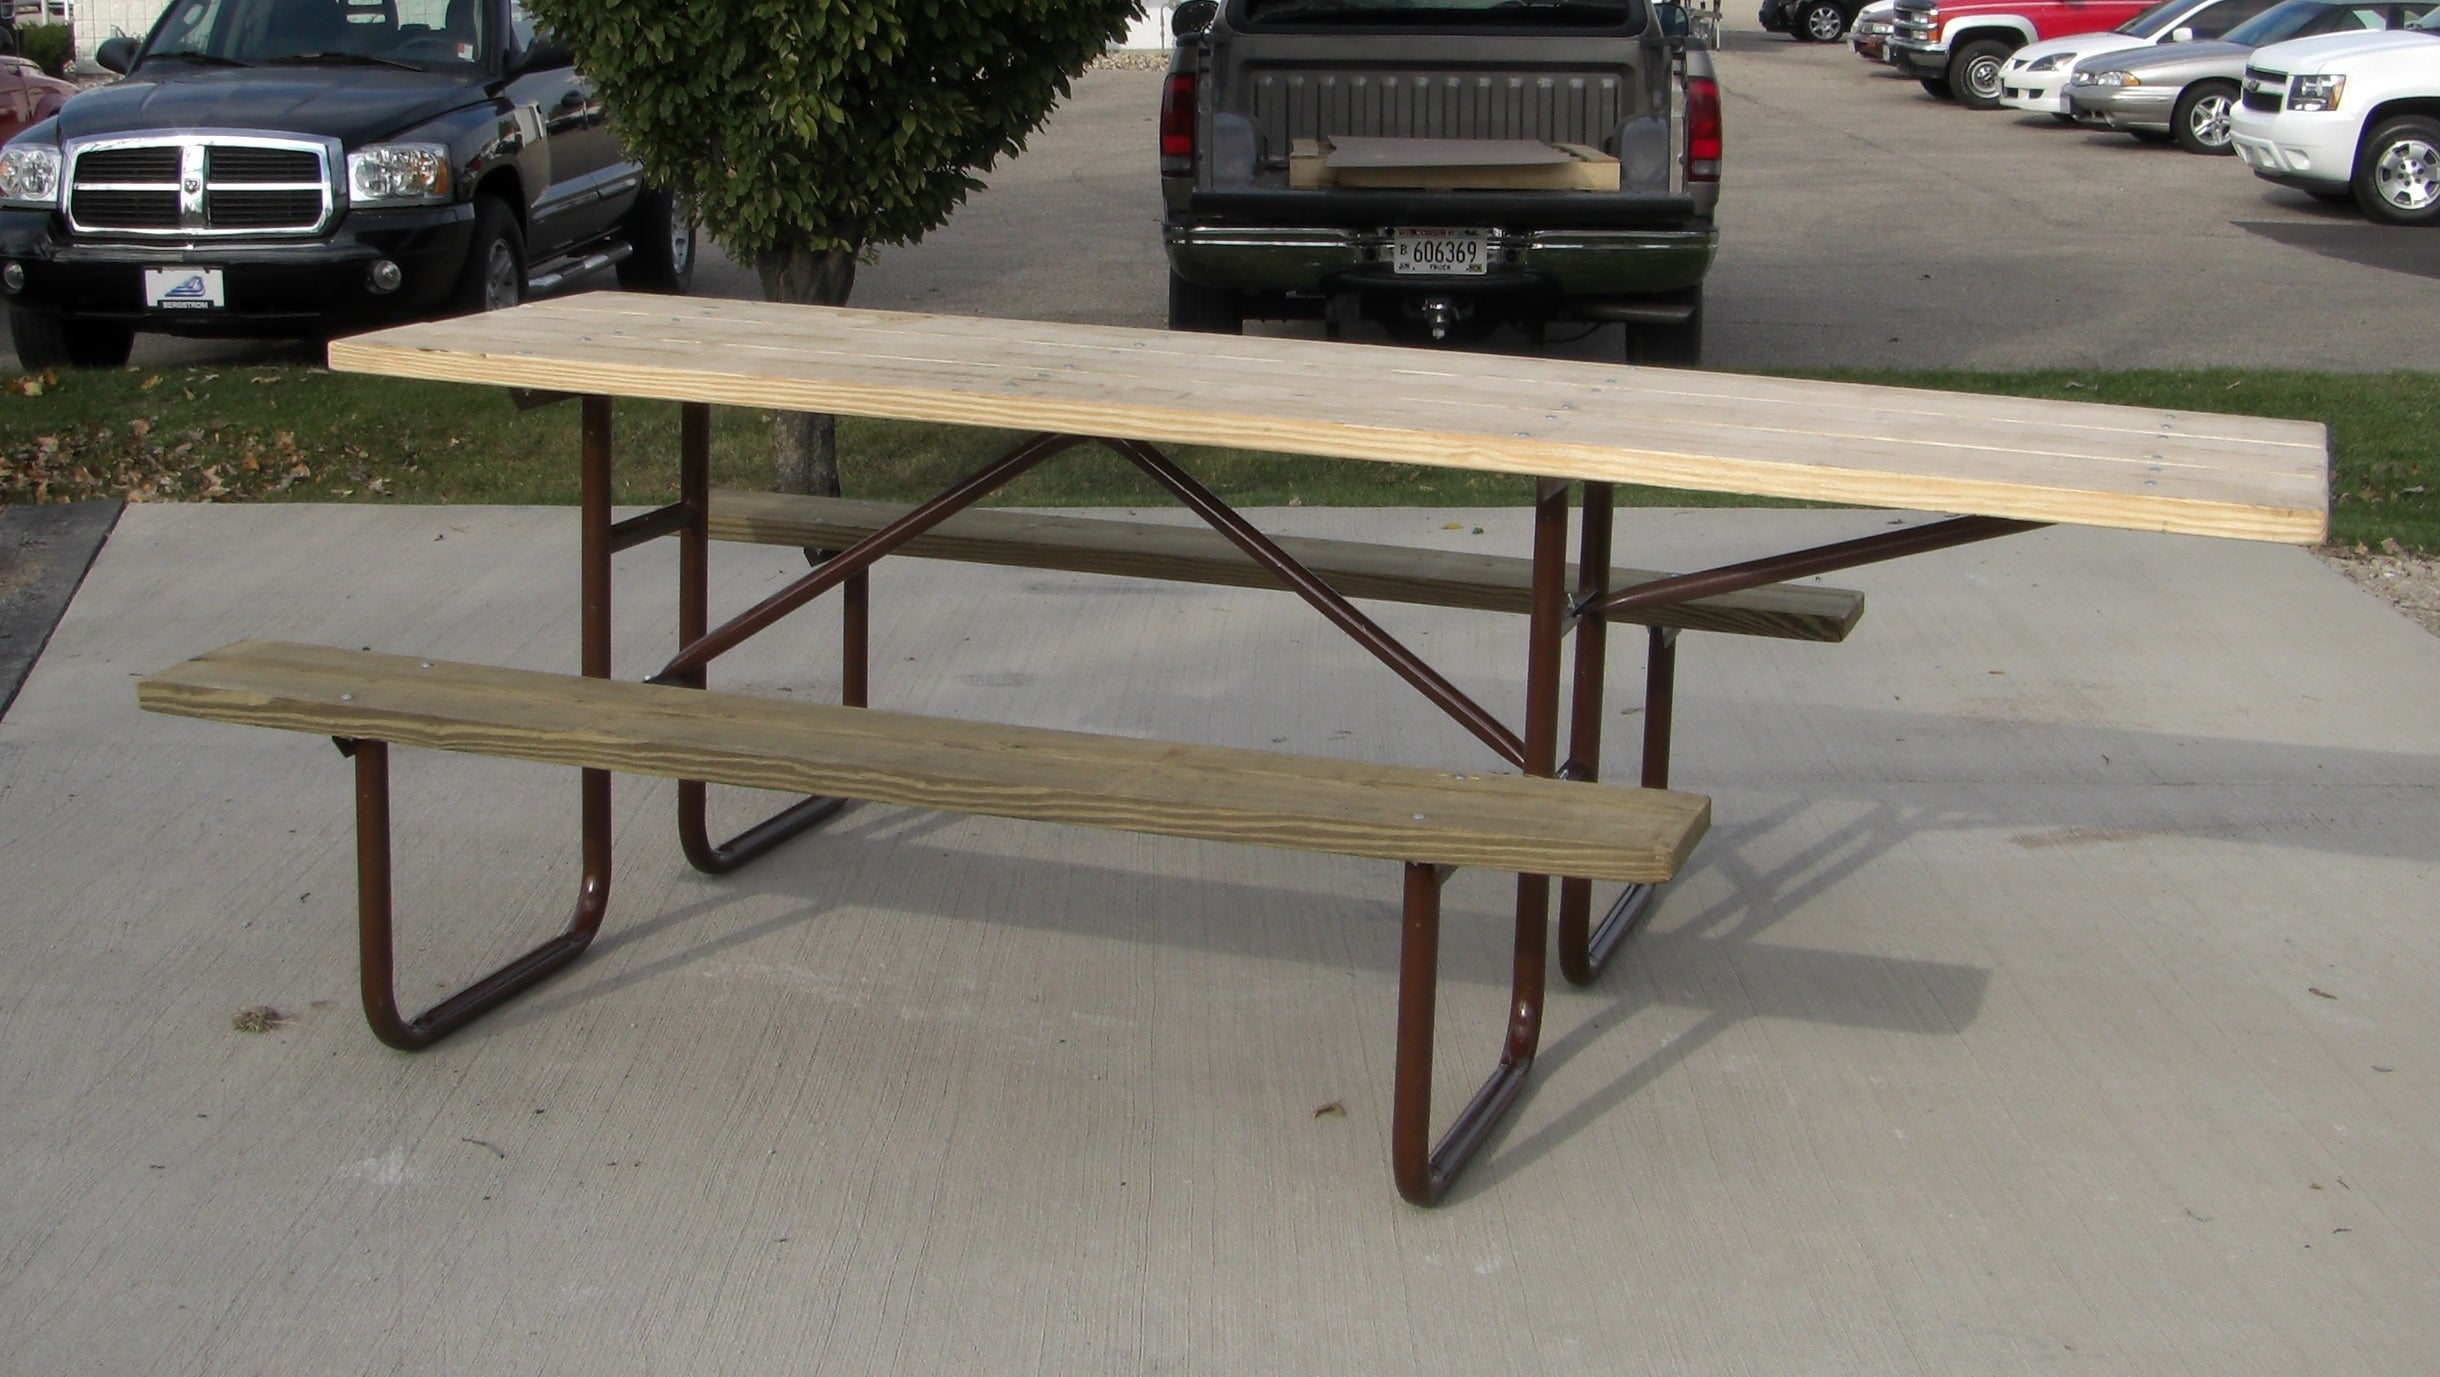 Wheelchair Traditional Table - UNTREATED Lumber